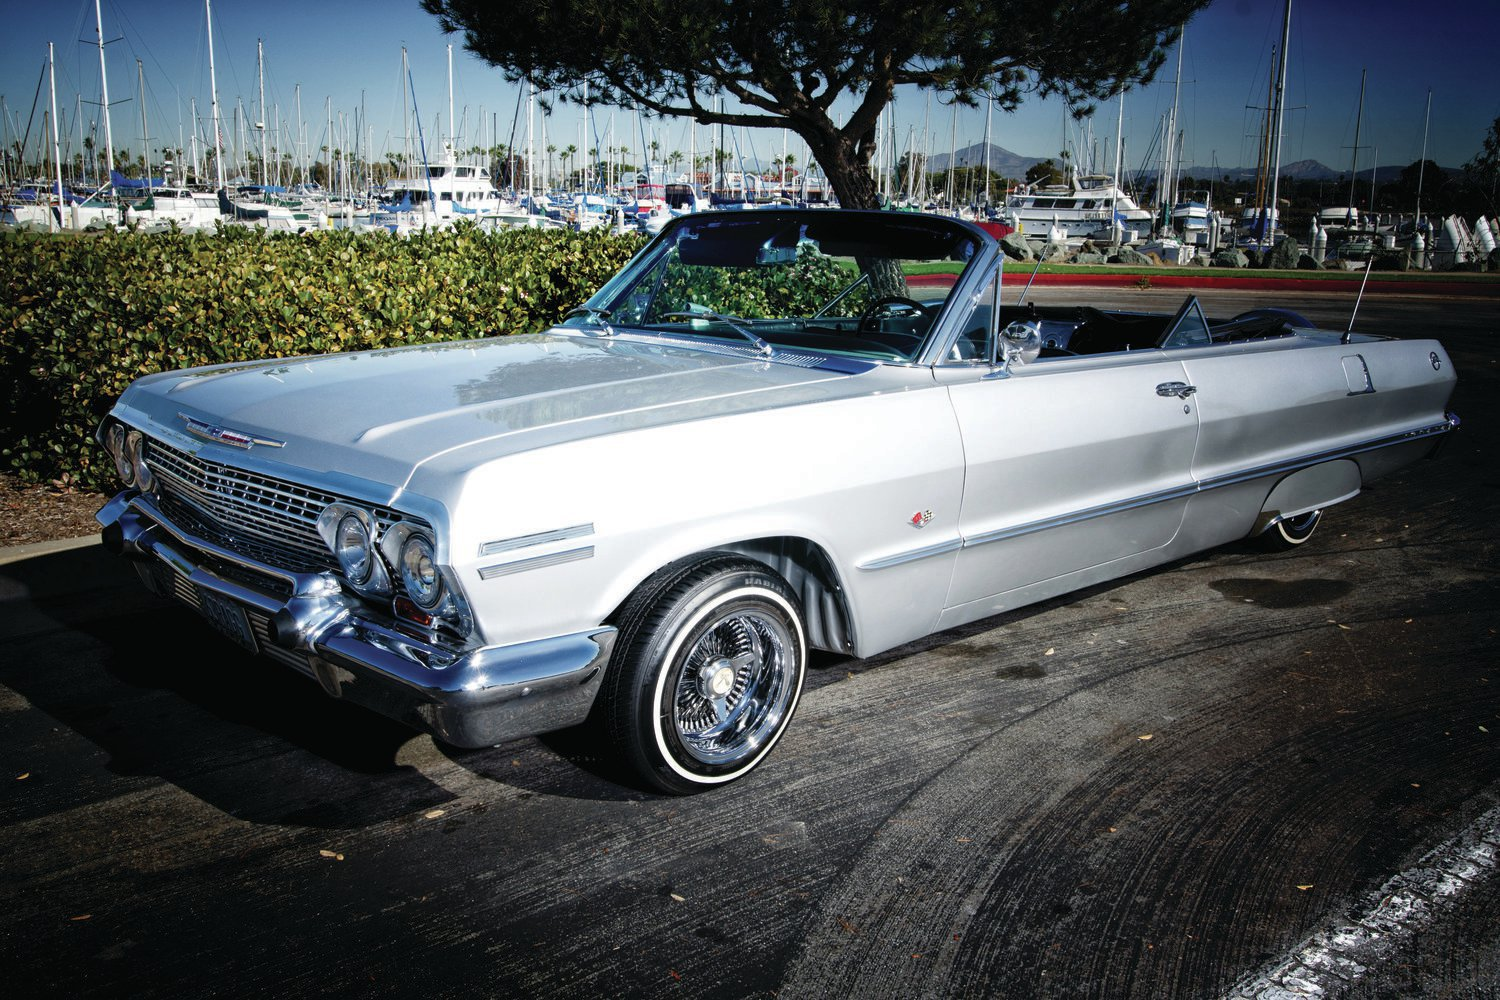 1967 Pontiac Gto1 additionally Best 2018 Cars Photo Fd besides Lamoure in addition Video Meet The Cars From Fast And Furious 8 moreover 3d Car Tuning. on chevrolet impala